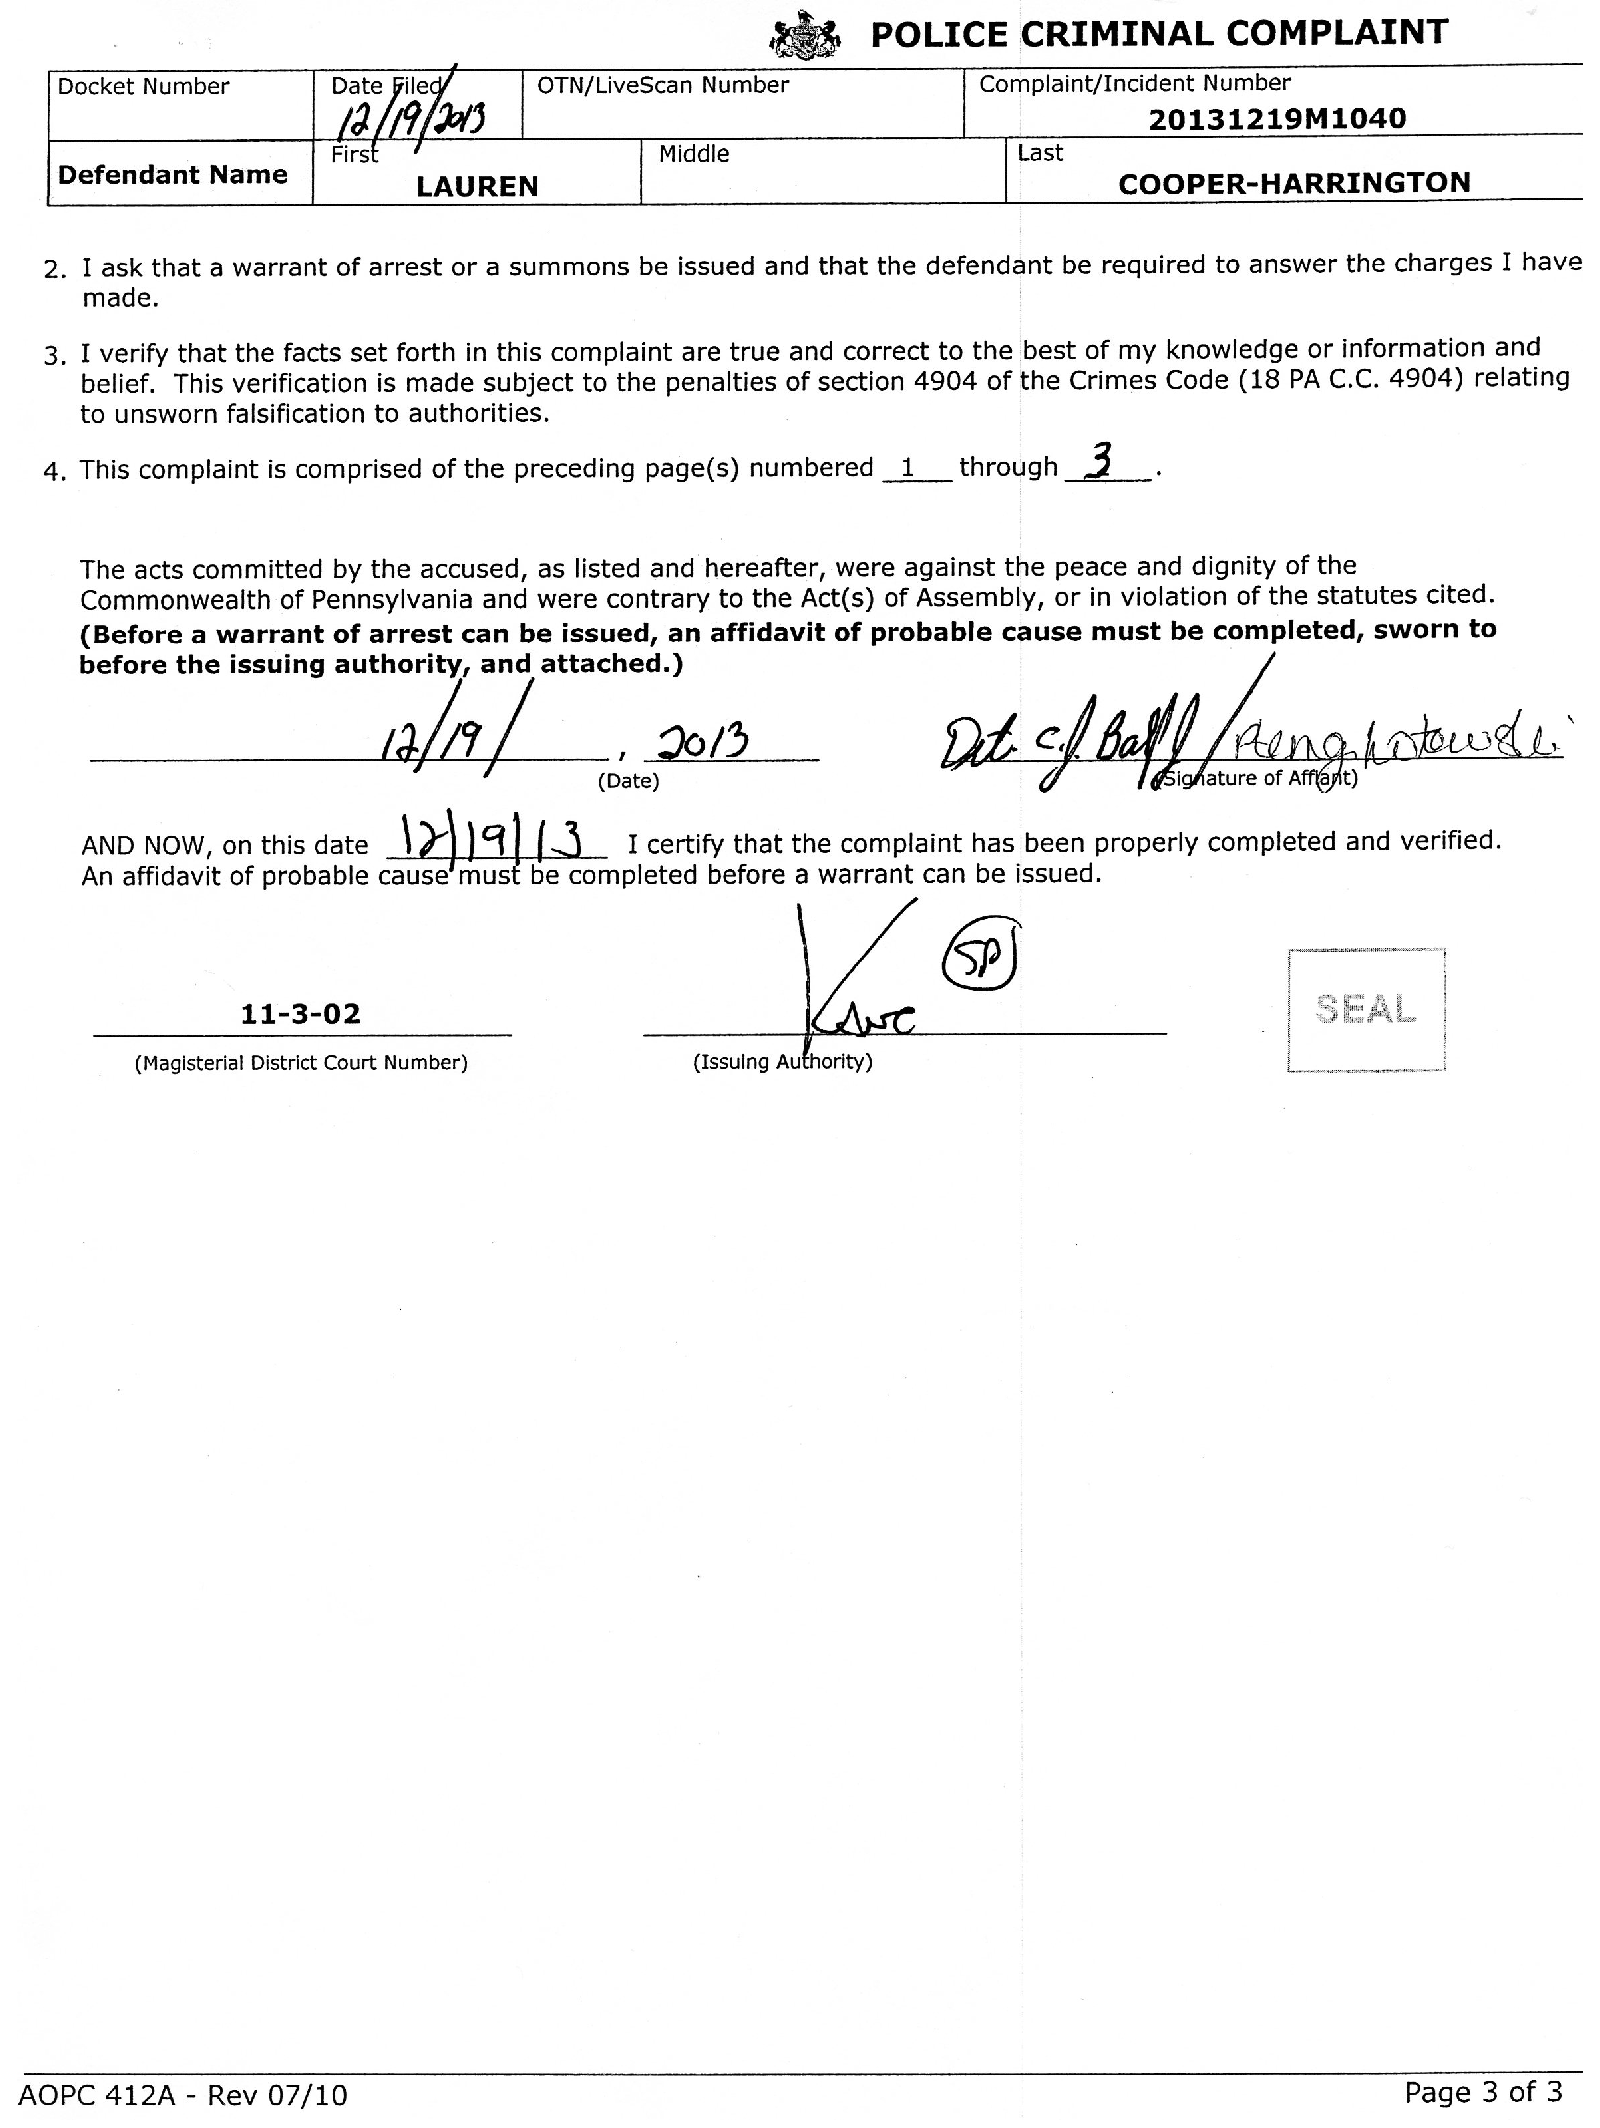 Copy of Harrington-Cooper Lauren Probable Cause Affidavit5.png